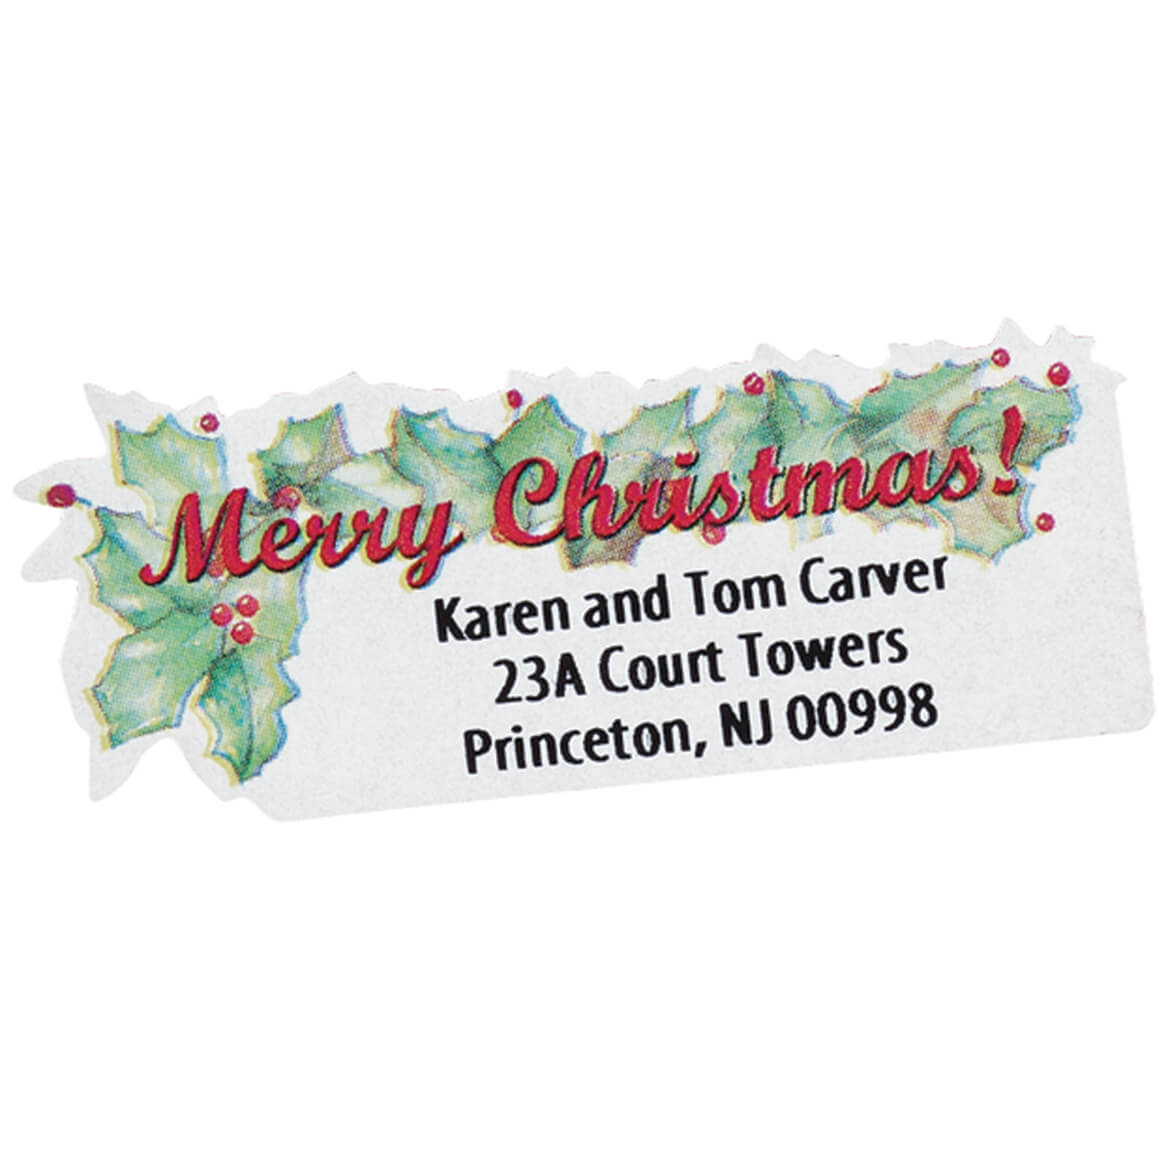 Merry Christmas Labels.Merry Christmas Labels Set Of 250